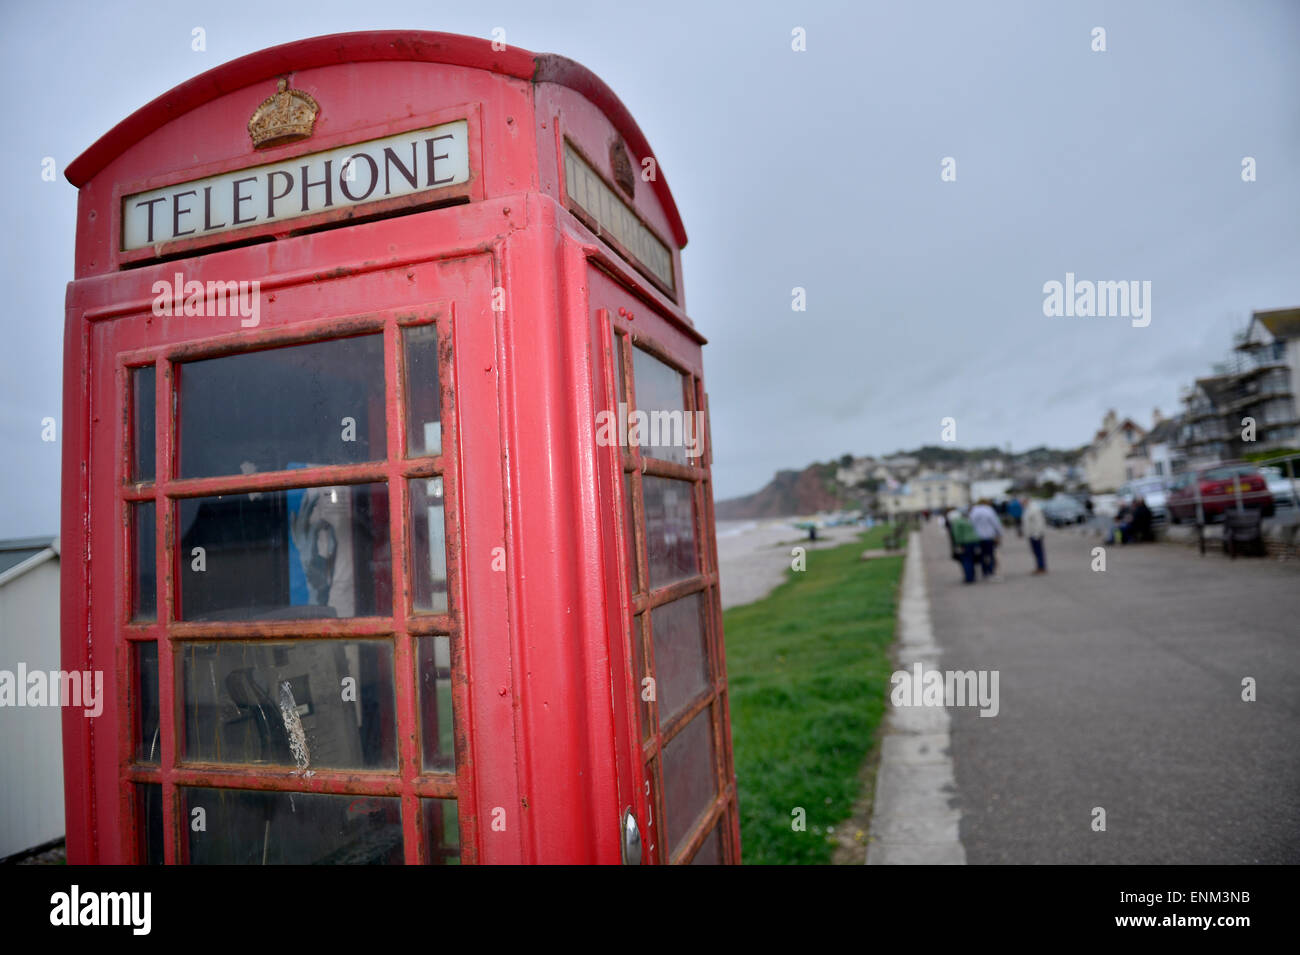 A British red public telephone box. England - Stock Image